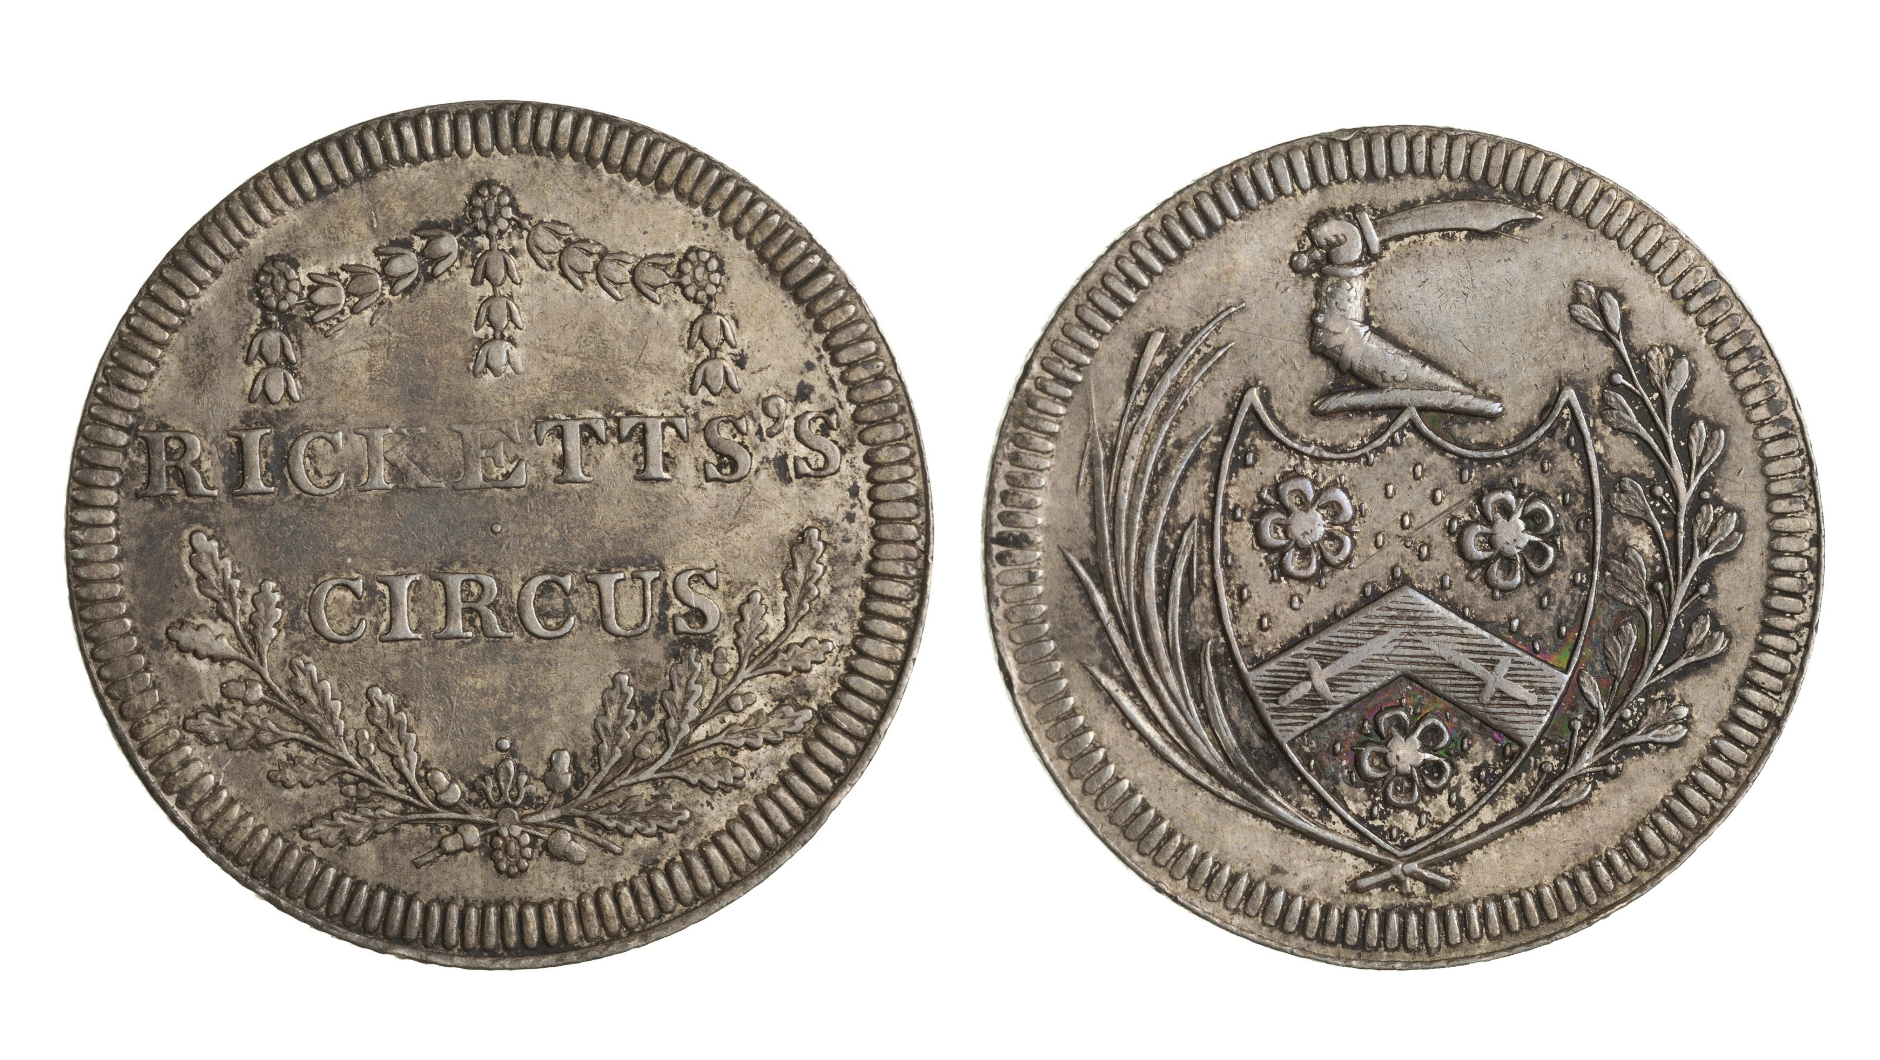 Admission coins to Ricketts Circus